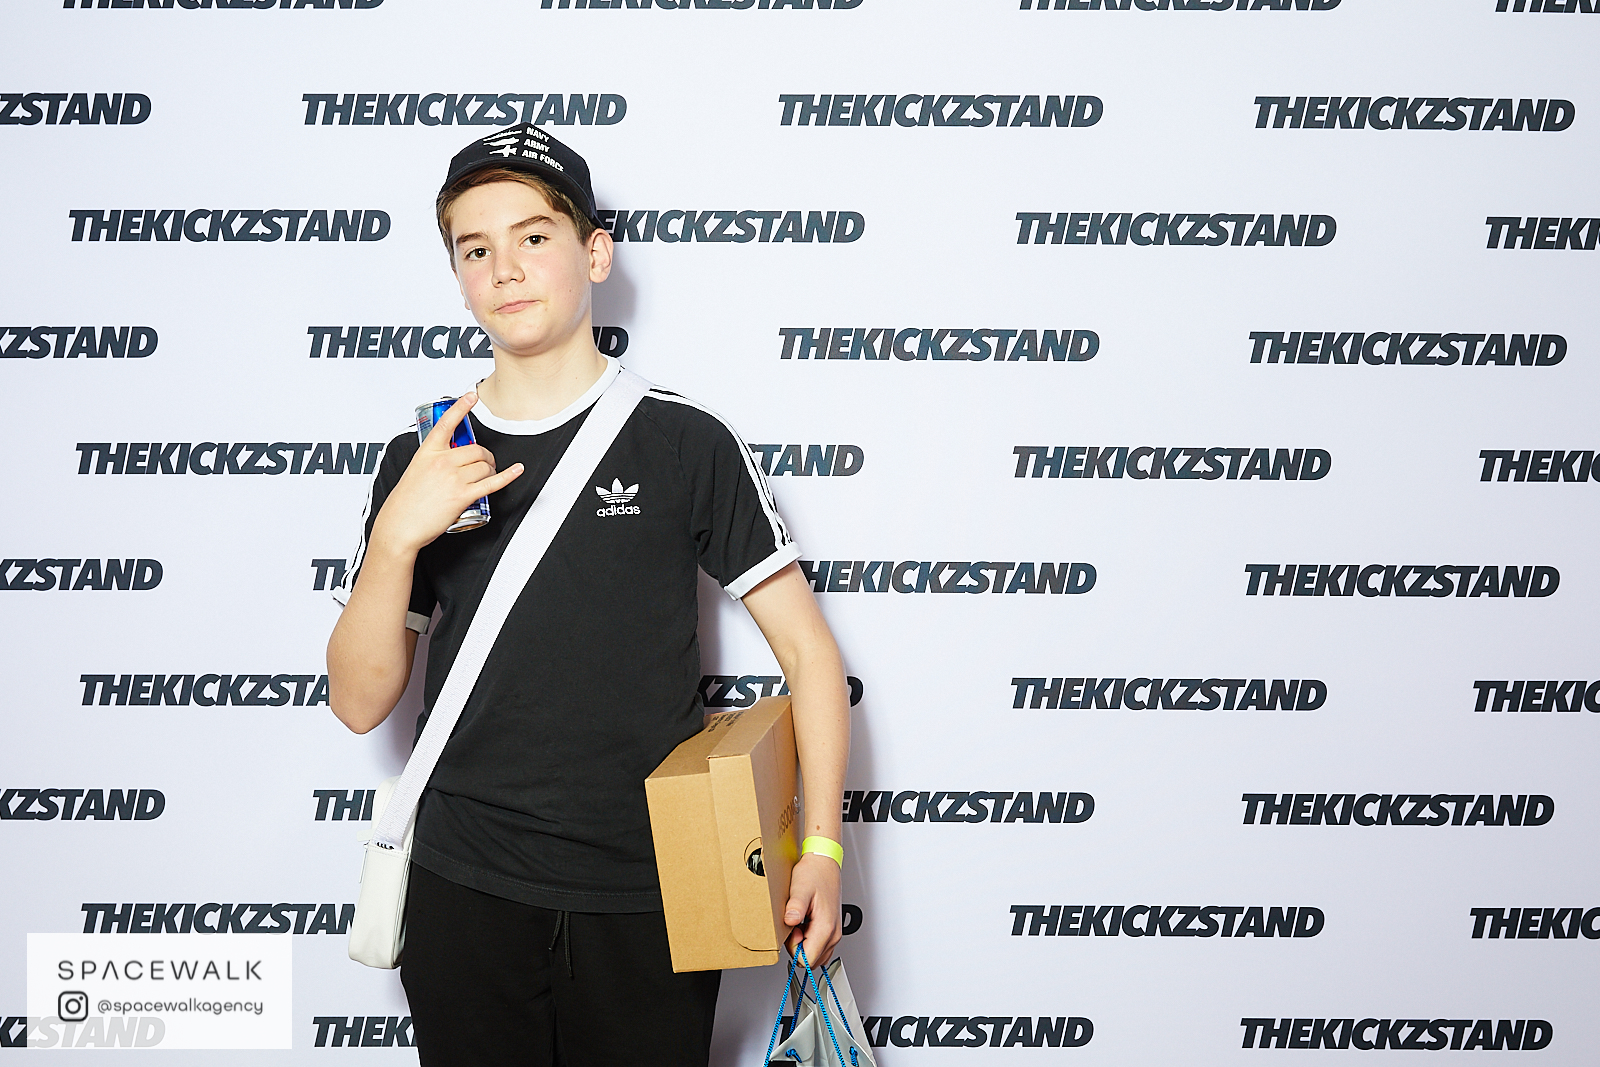 KICKZSTAND_BOOTH_052